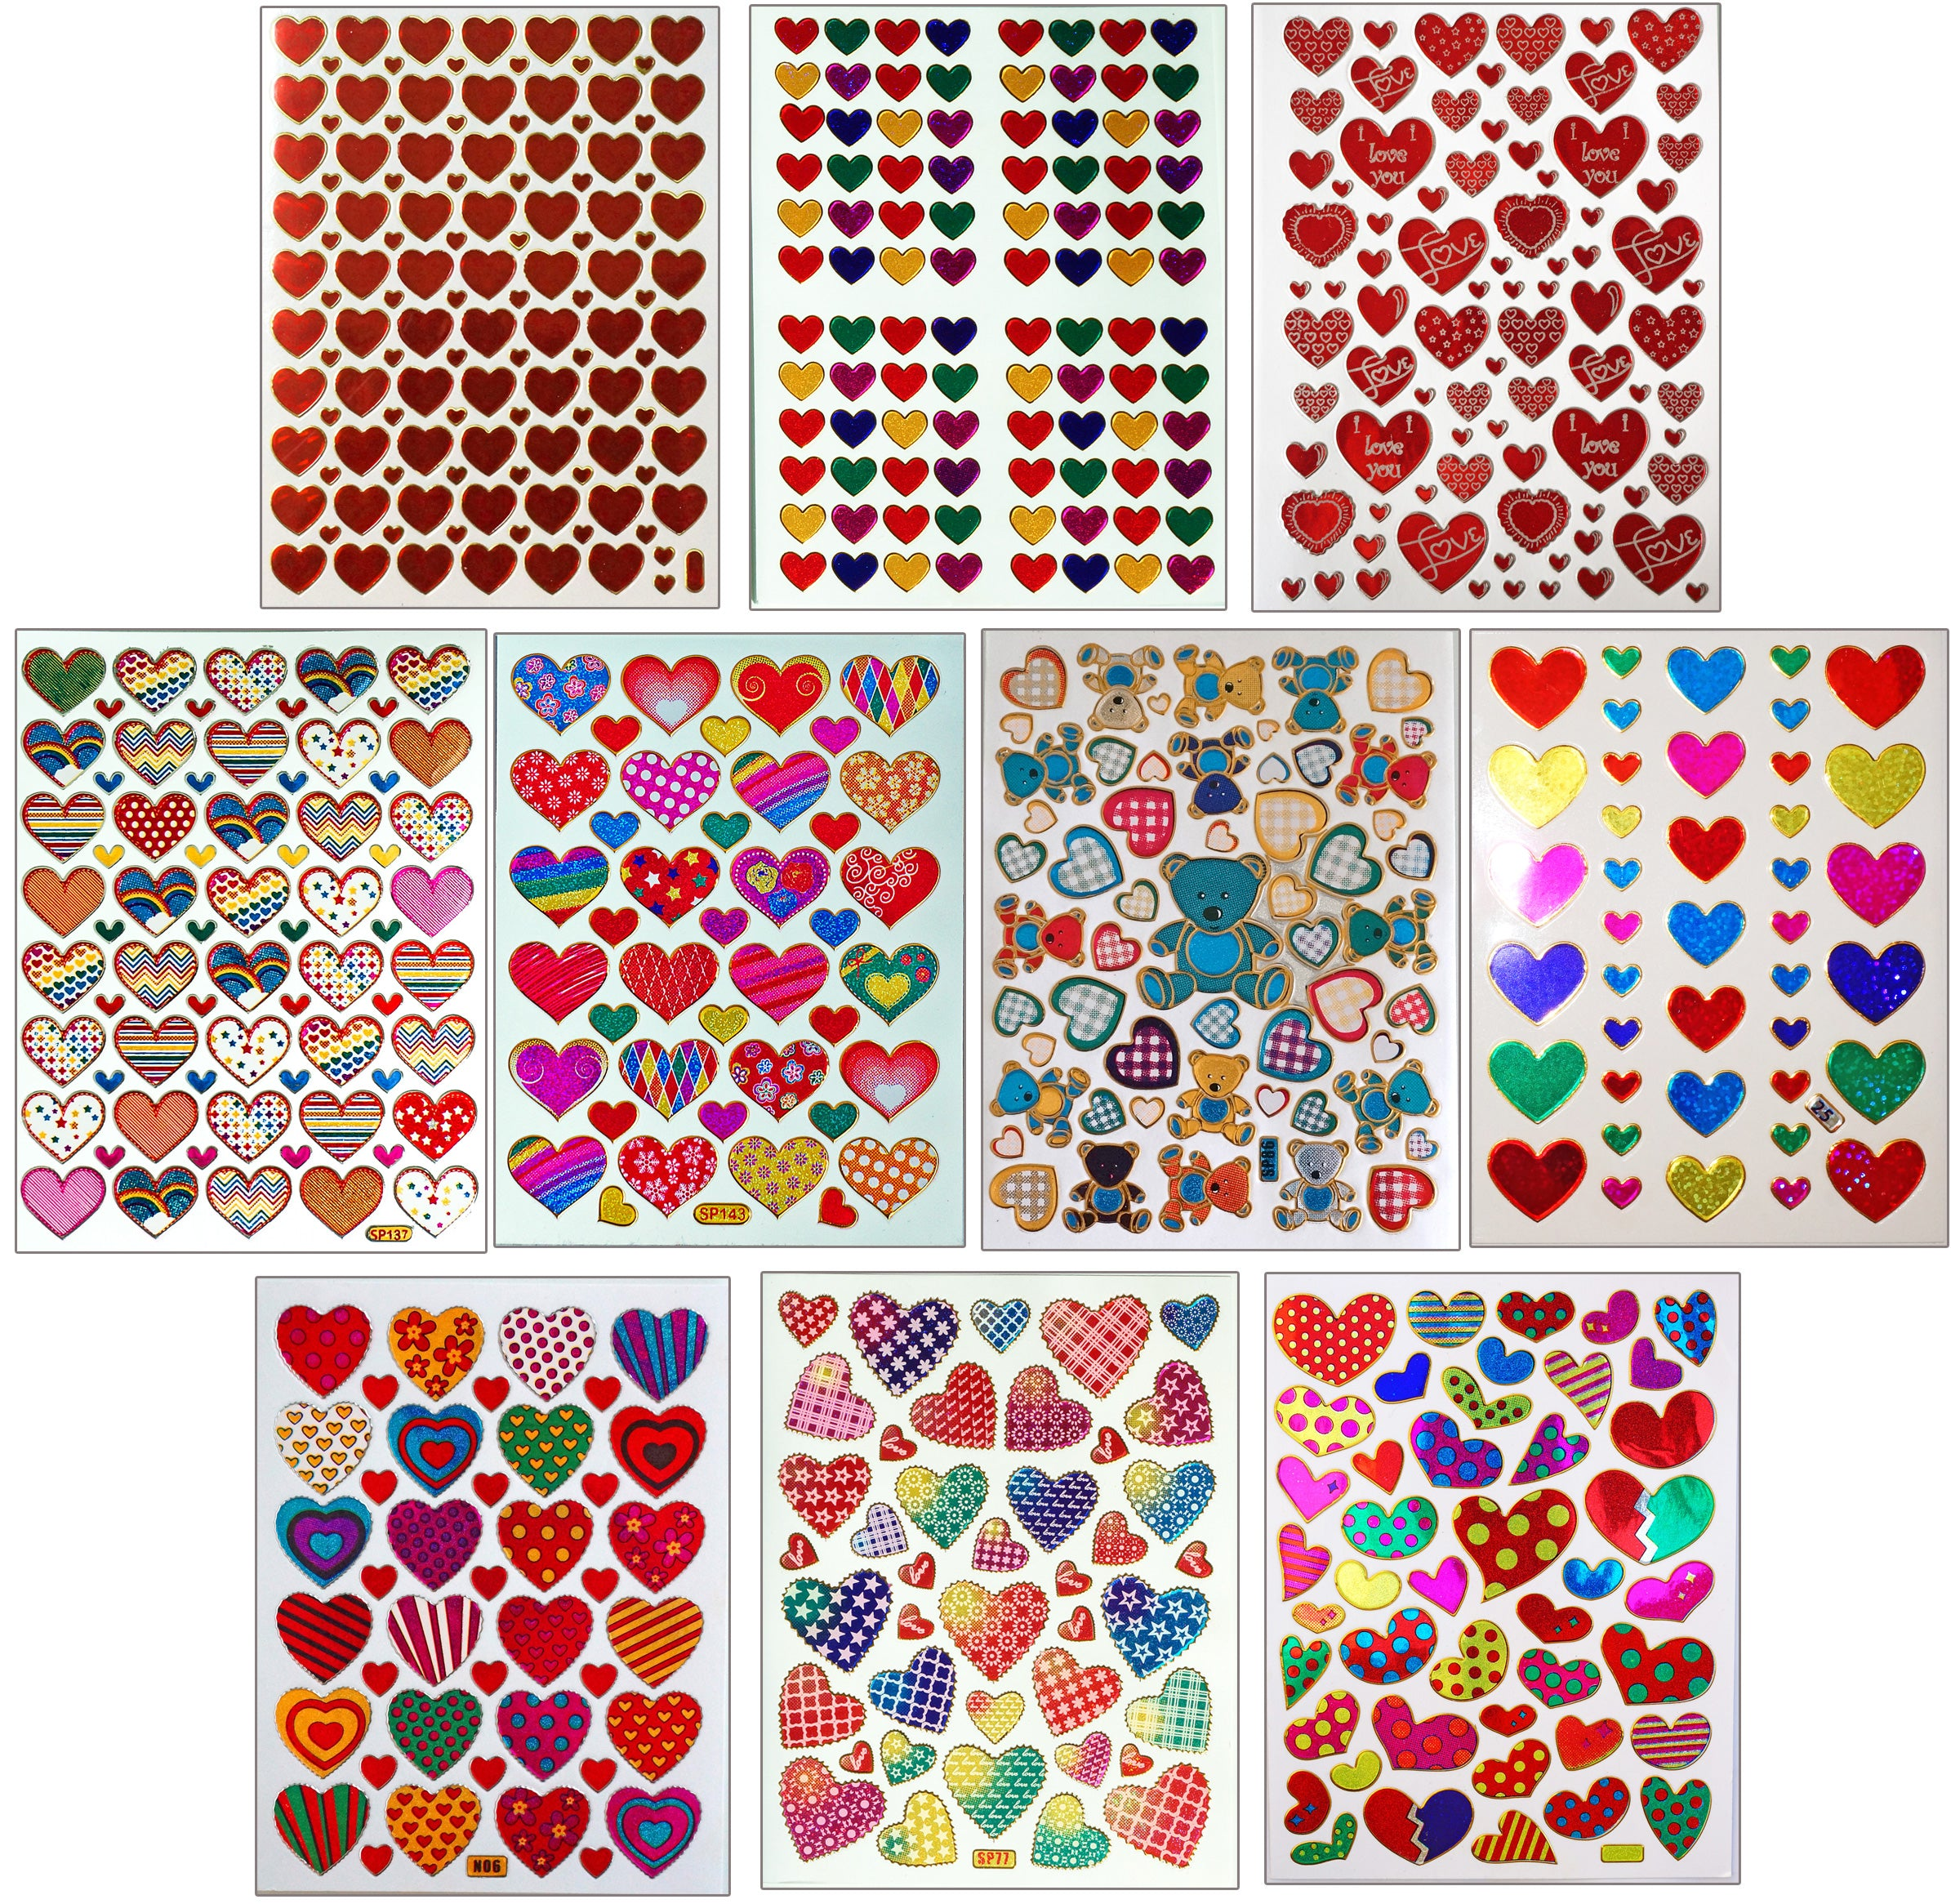 Paper cellar Glitter Valentine heart stickers red and gold x 2 packs